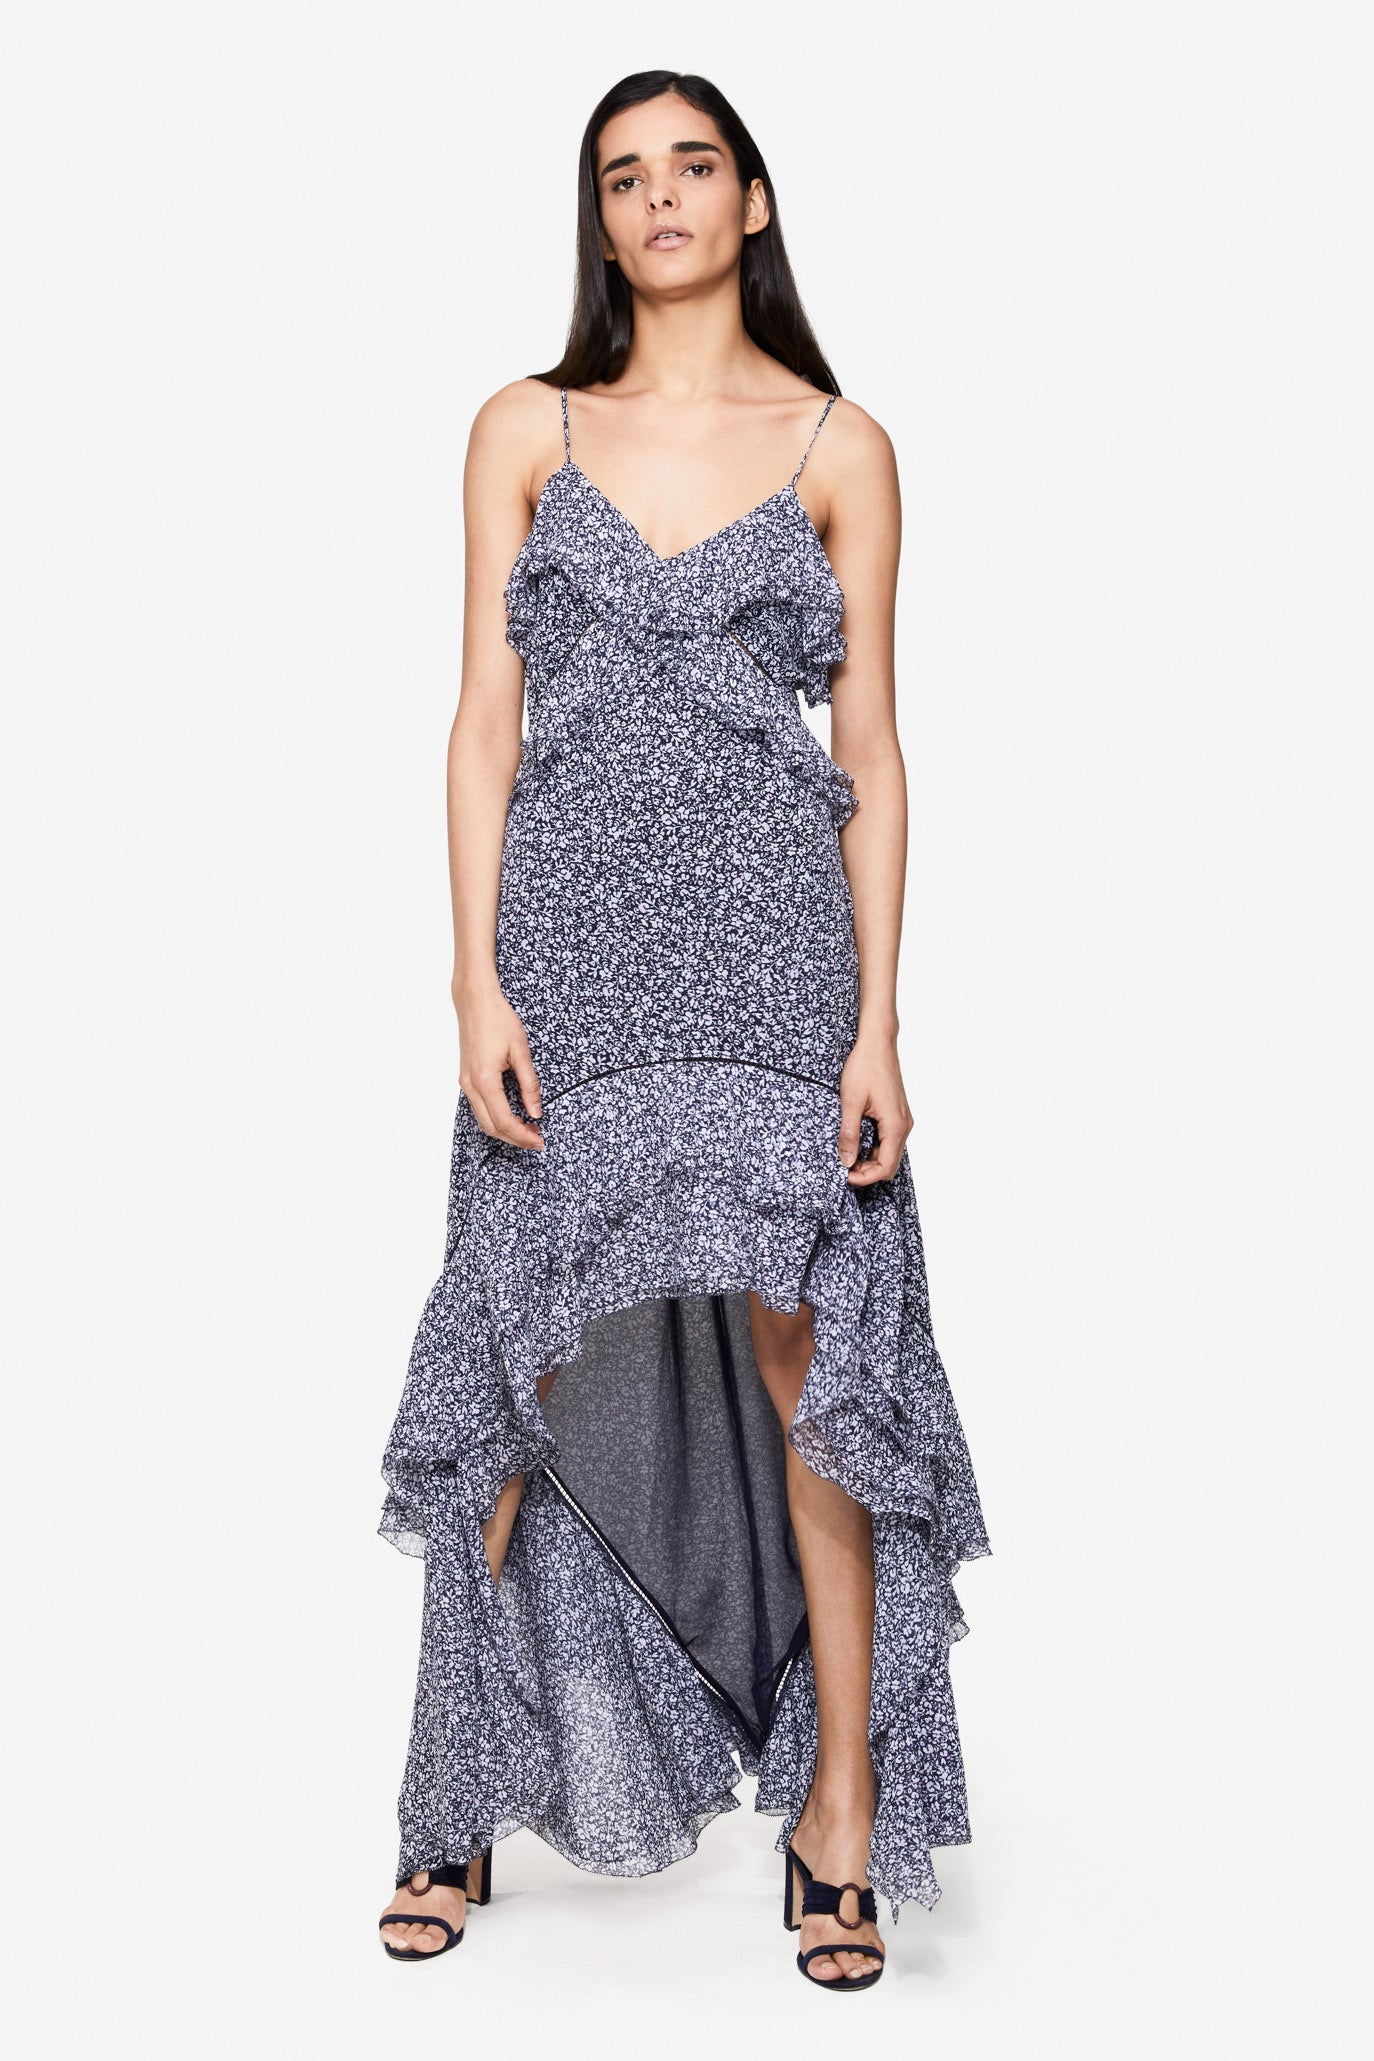 SILVIA FLORAL CRINKLE CHIFFON DRESS GOWN